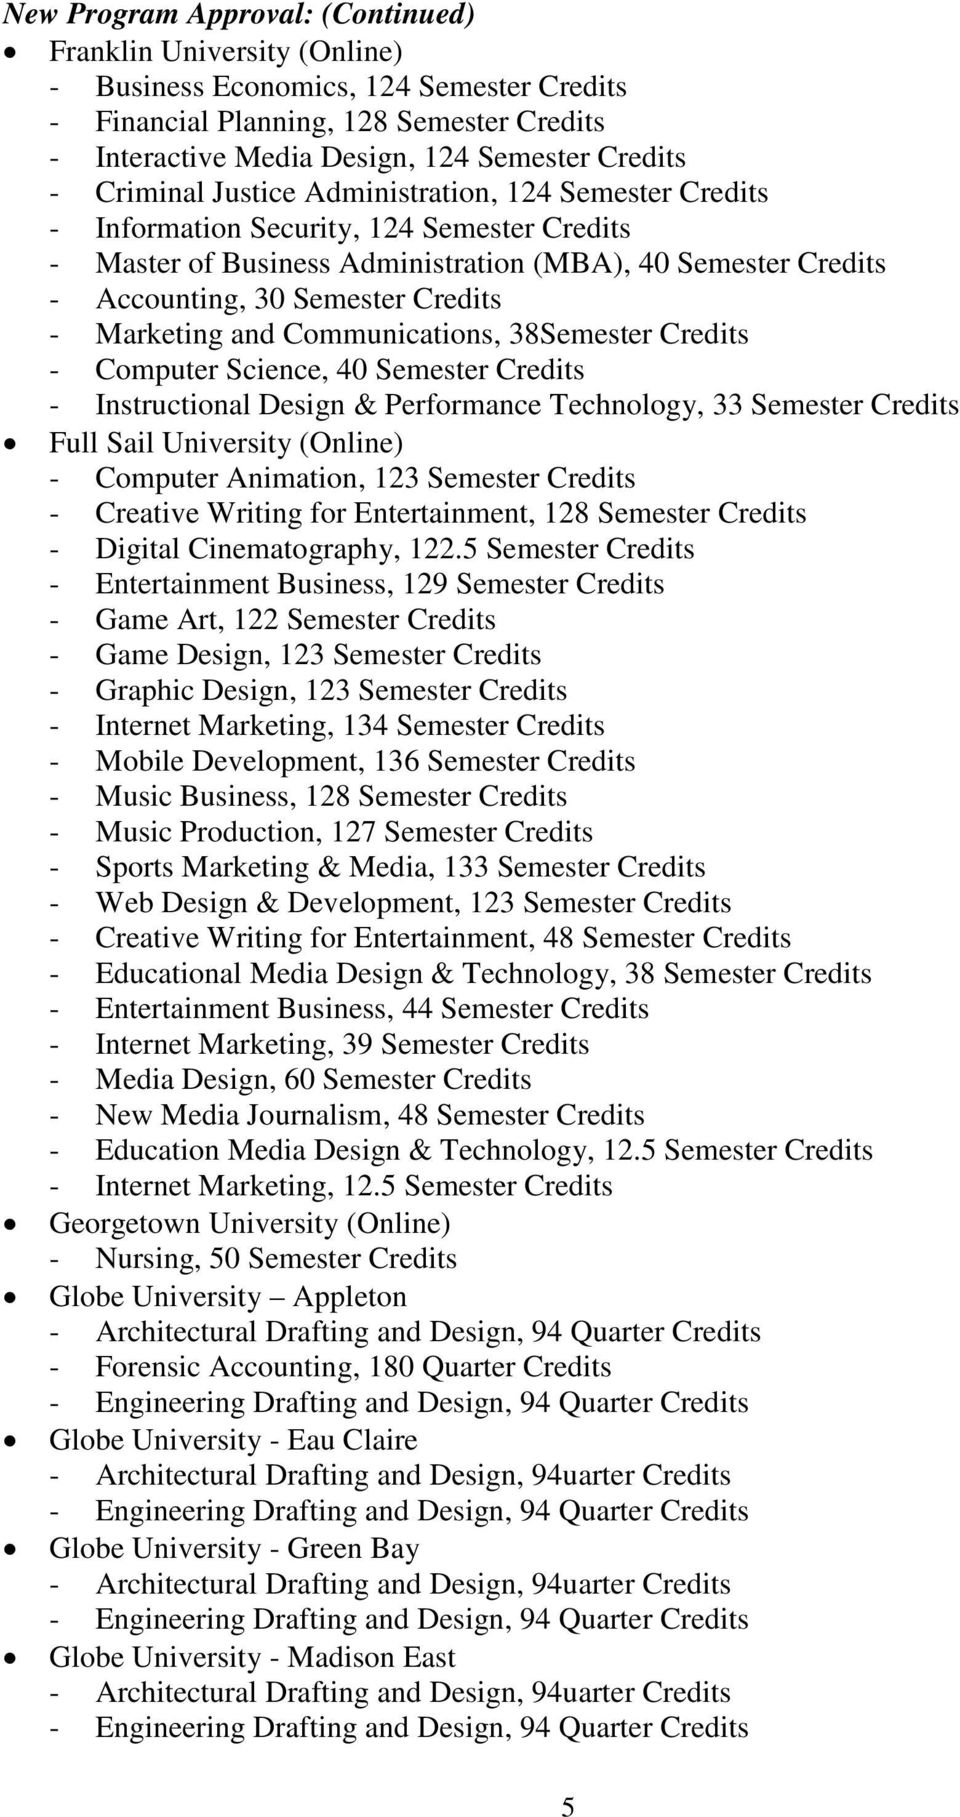 Marketing and Communications, 38Semester Credits - Computer Science, 40 Semester Credits - Instructional Design & Performance Technology, 33 Semester Credits Full Sail University (Online) - Computer